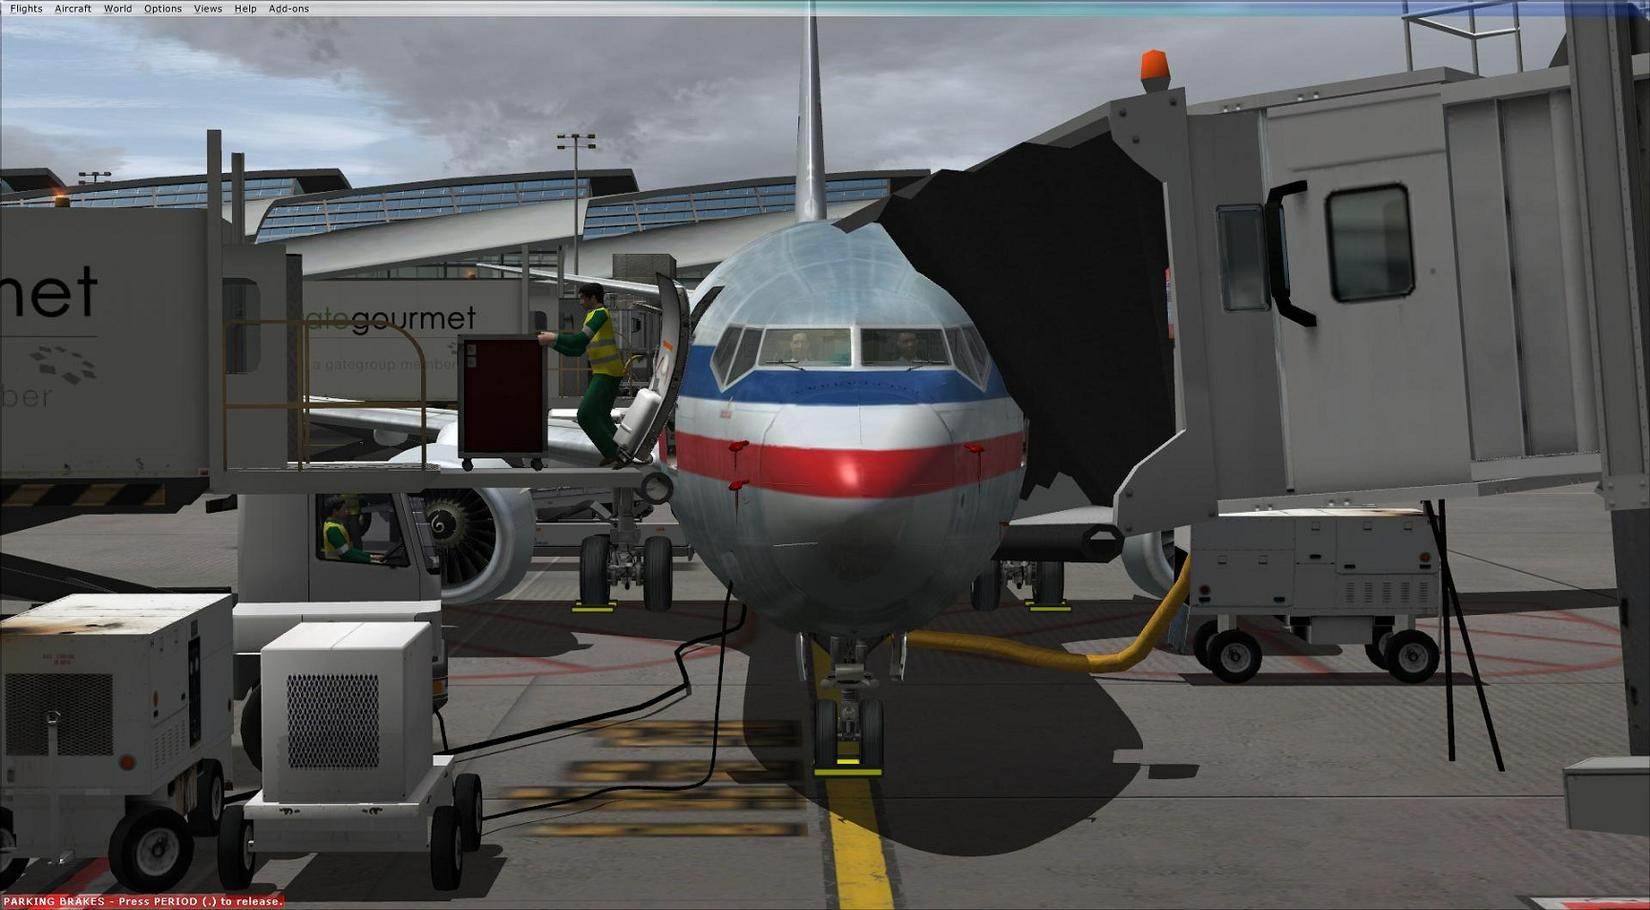 FSX GSX FSDT LAX PMDG NGX (too many acronyms!!!) - SimHQ Forums